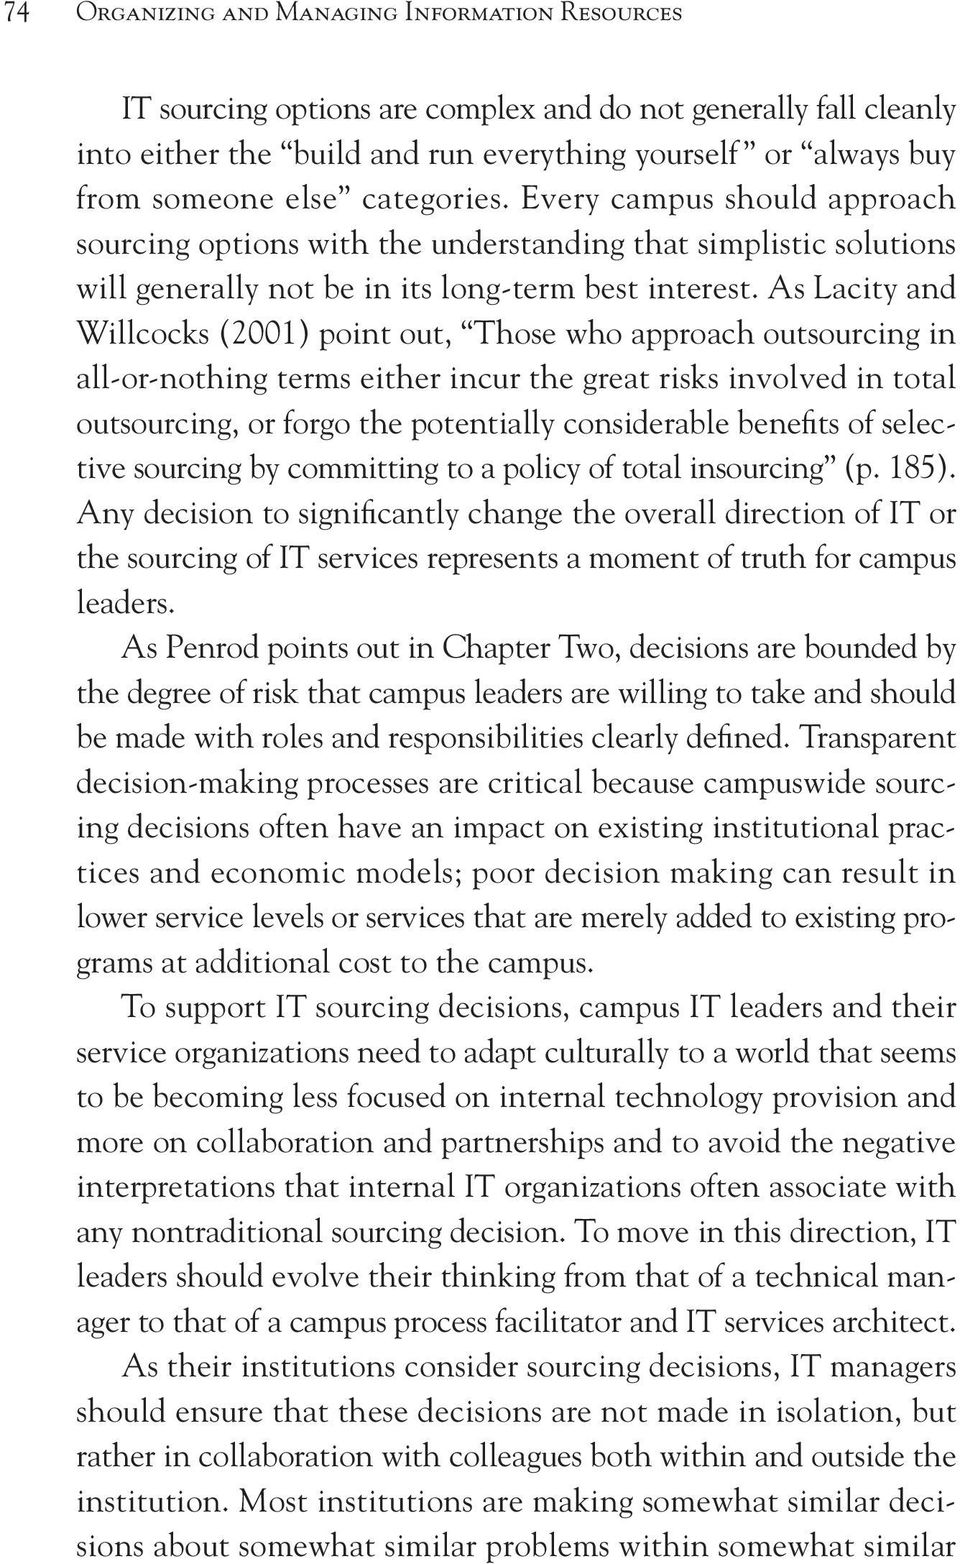 As Lacity and Willcocks (2001) point out, Those who approach outsourcing in all-or-nothing terms either incur the great risks involved in total outsourcing, or forgo the potentially considerable